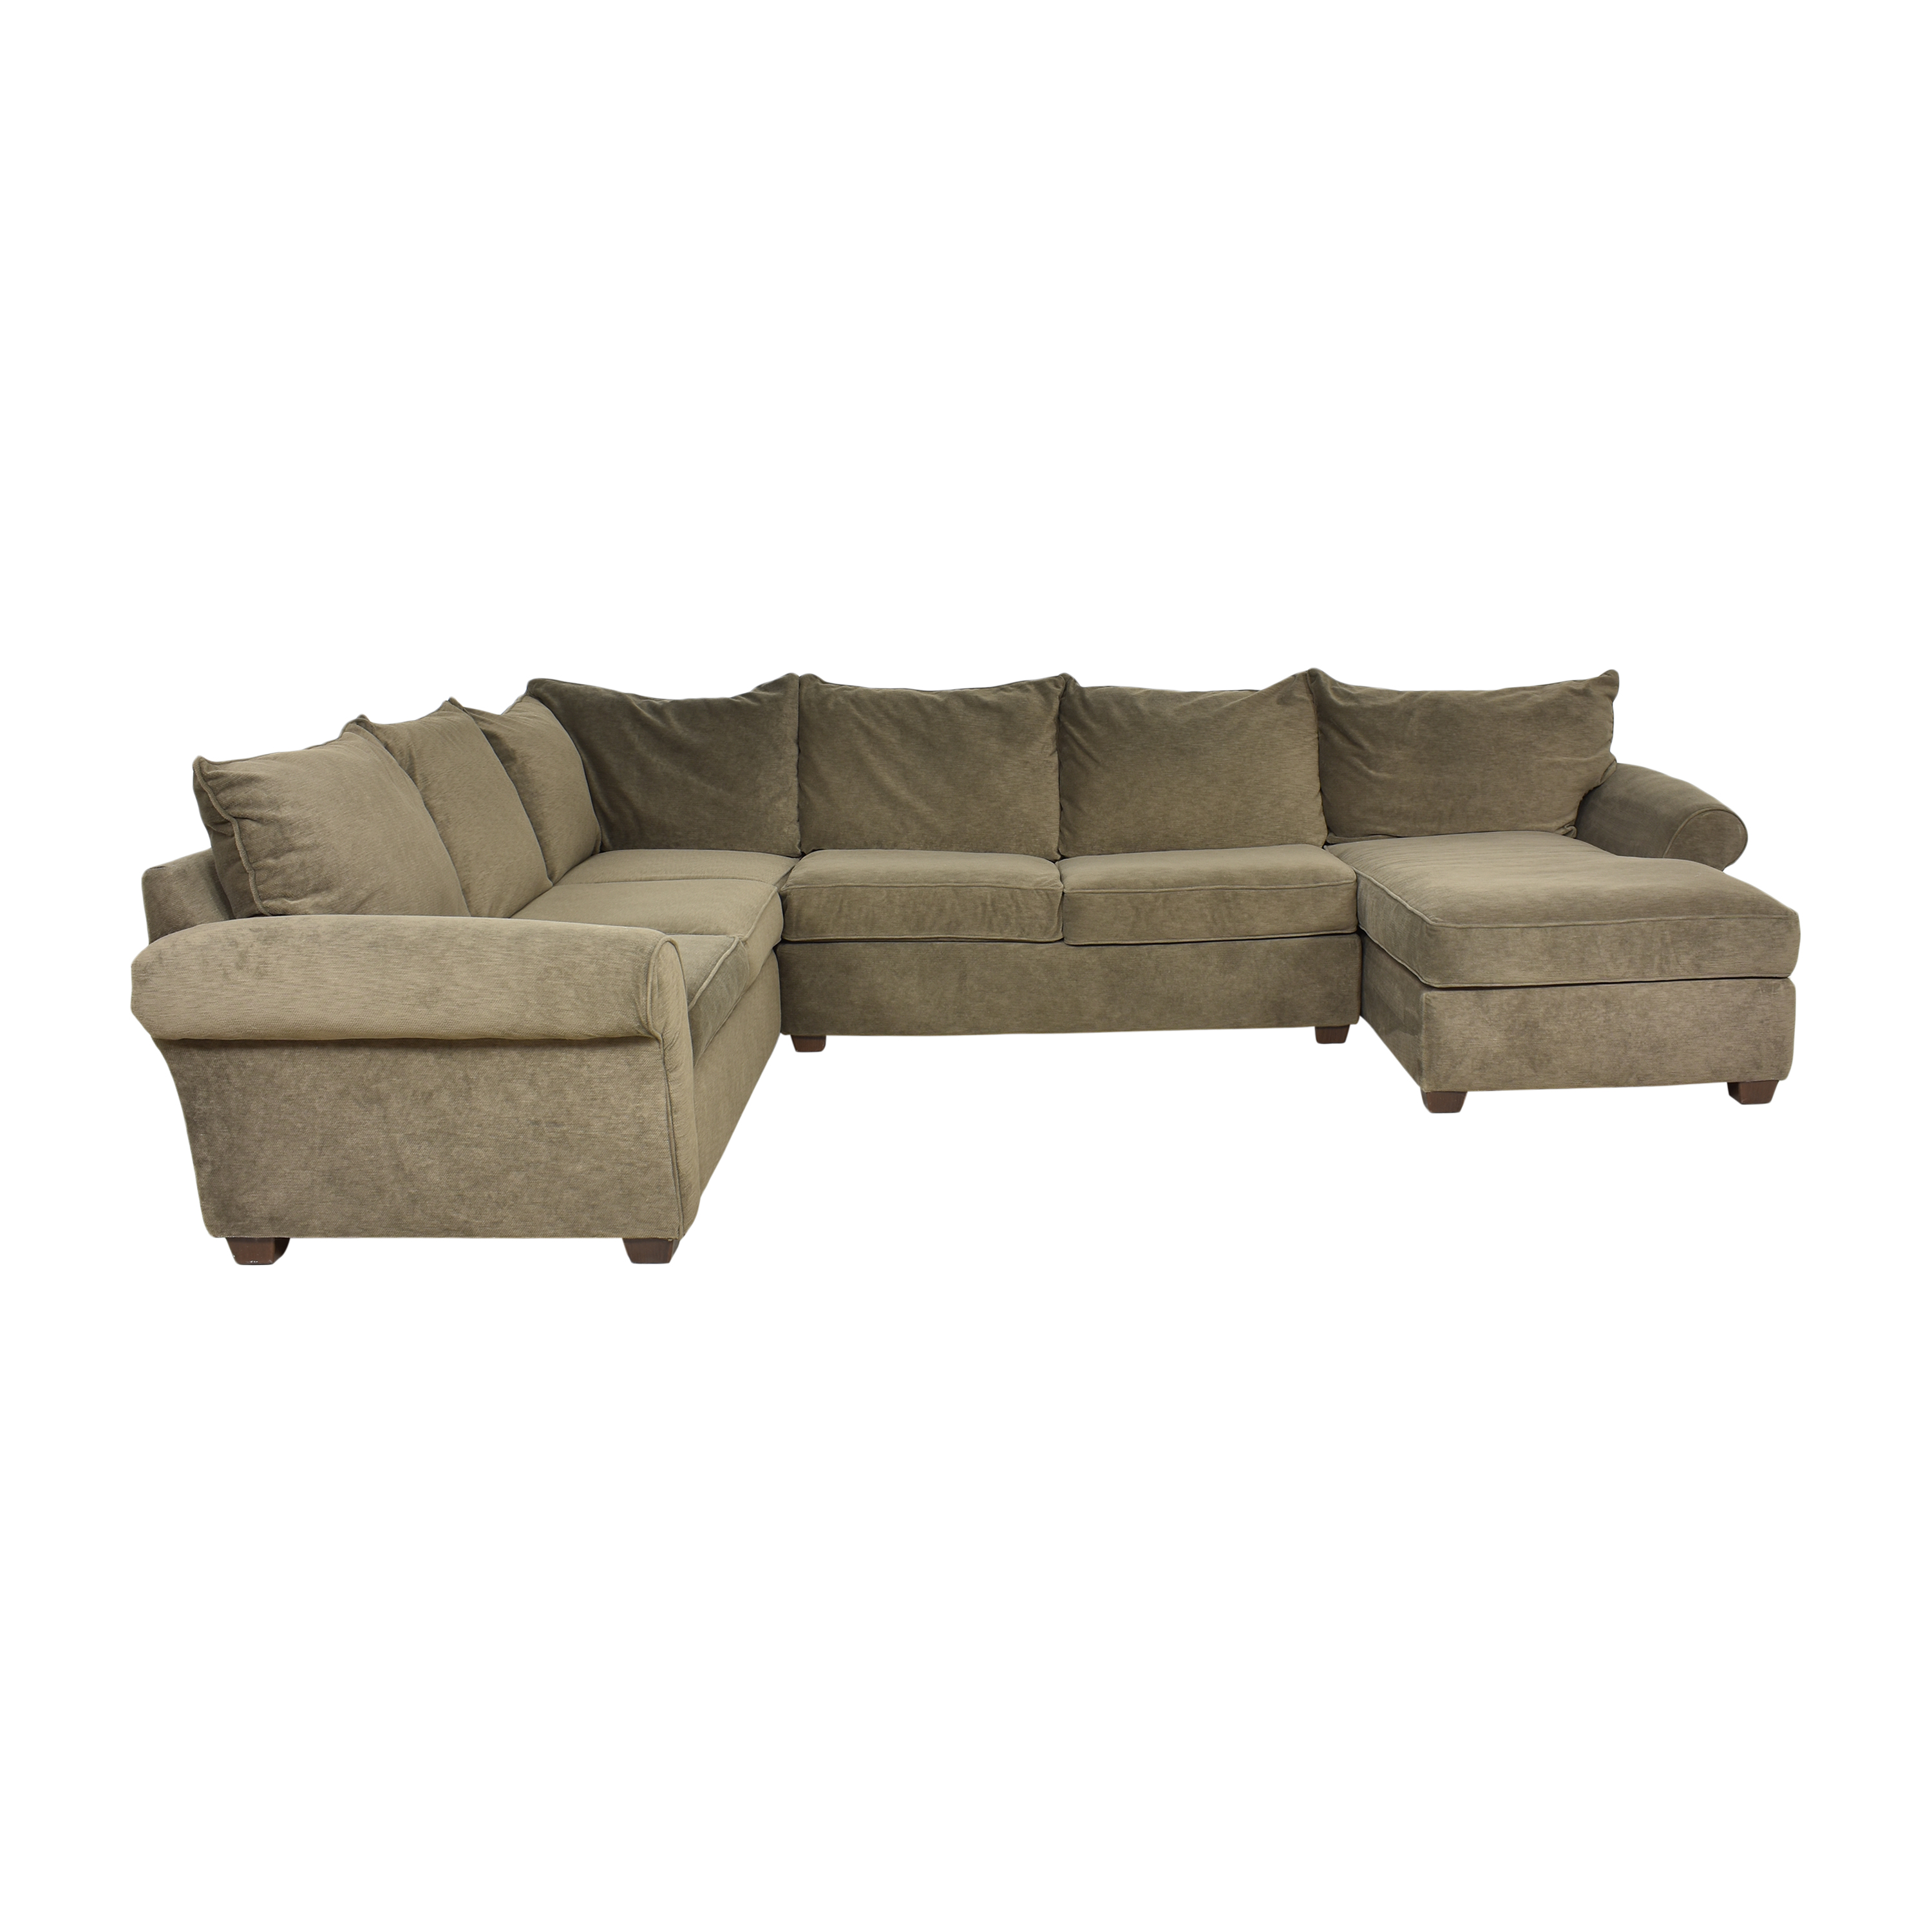 Alan White Alan White U Shaped Sectional with Chaise price